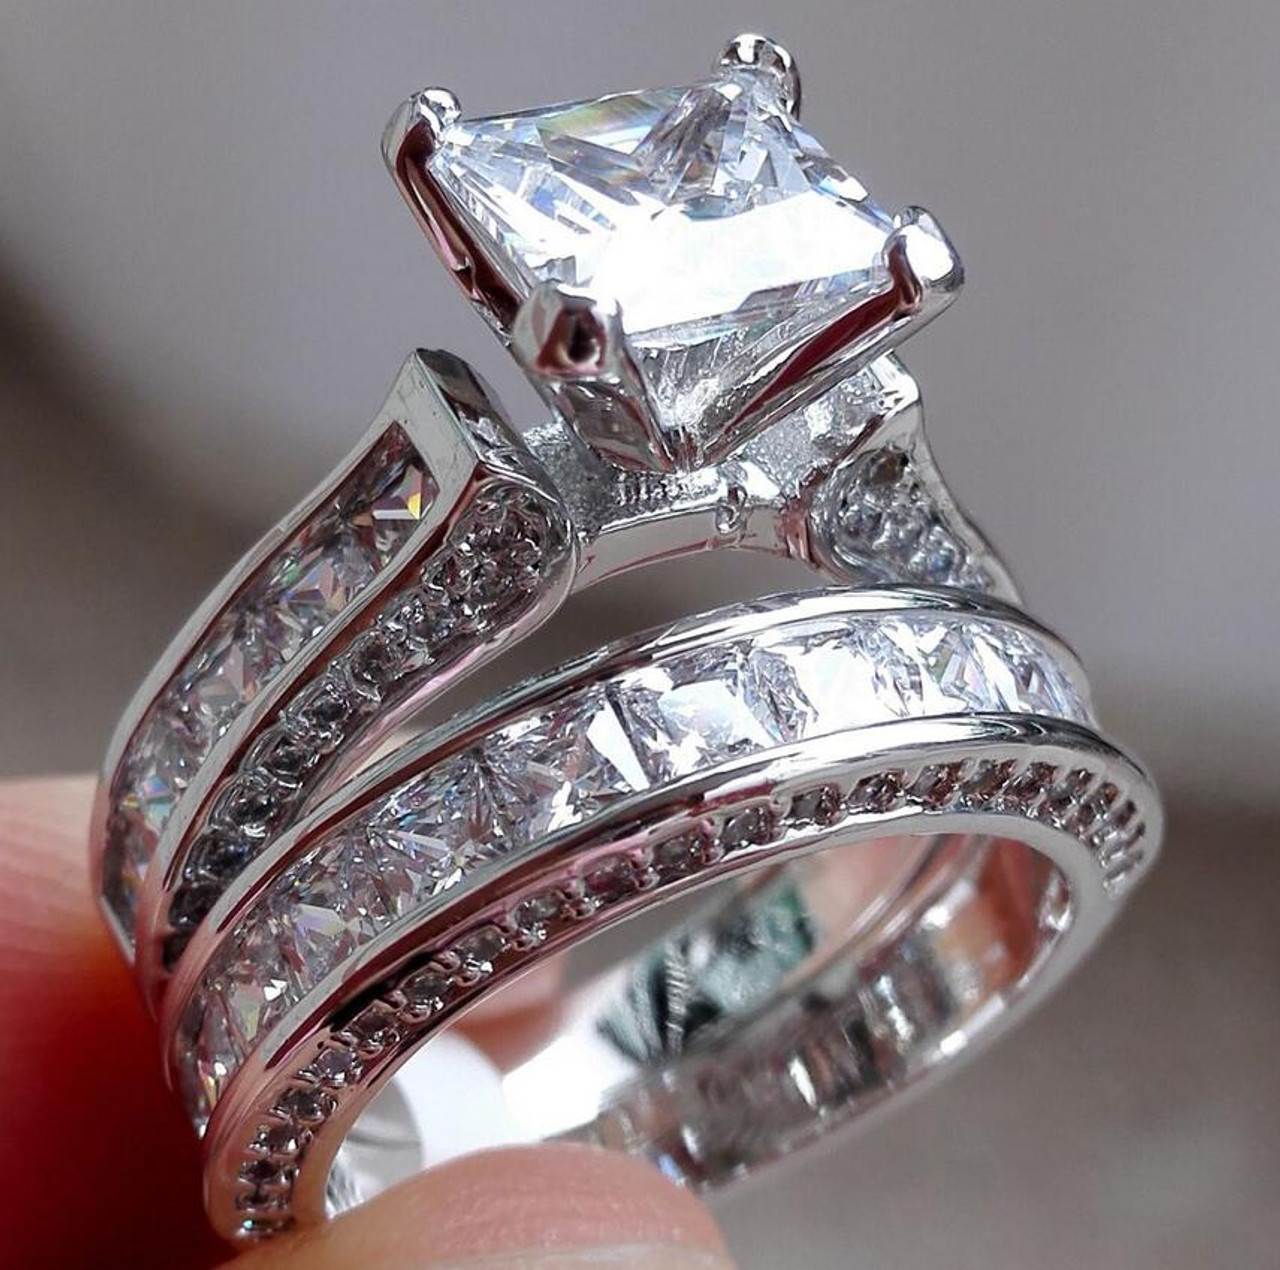 2b97d8d9d0 Couple Rings For Lover Luxury Jewelry 925 Sterling Silver Princess Cut 5A  White Clear Zirconia CZ ...